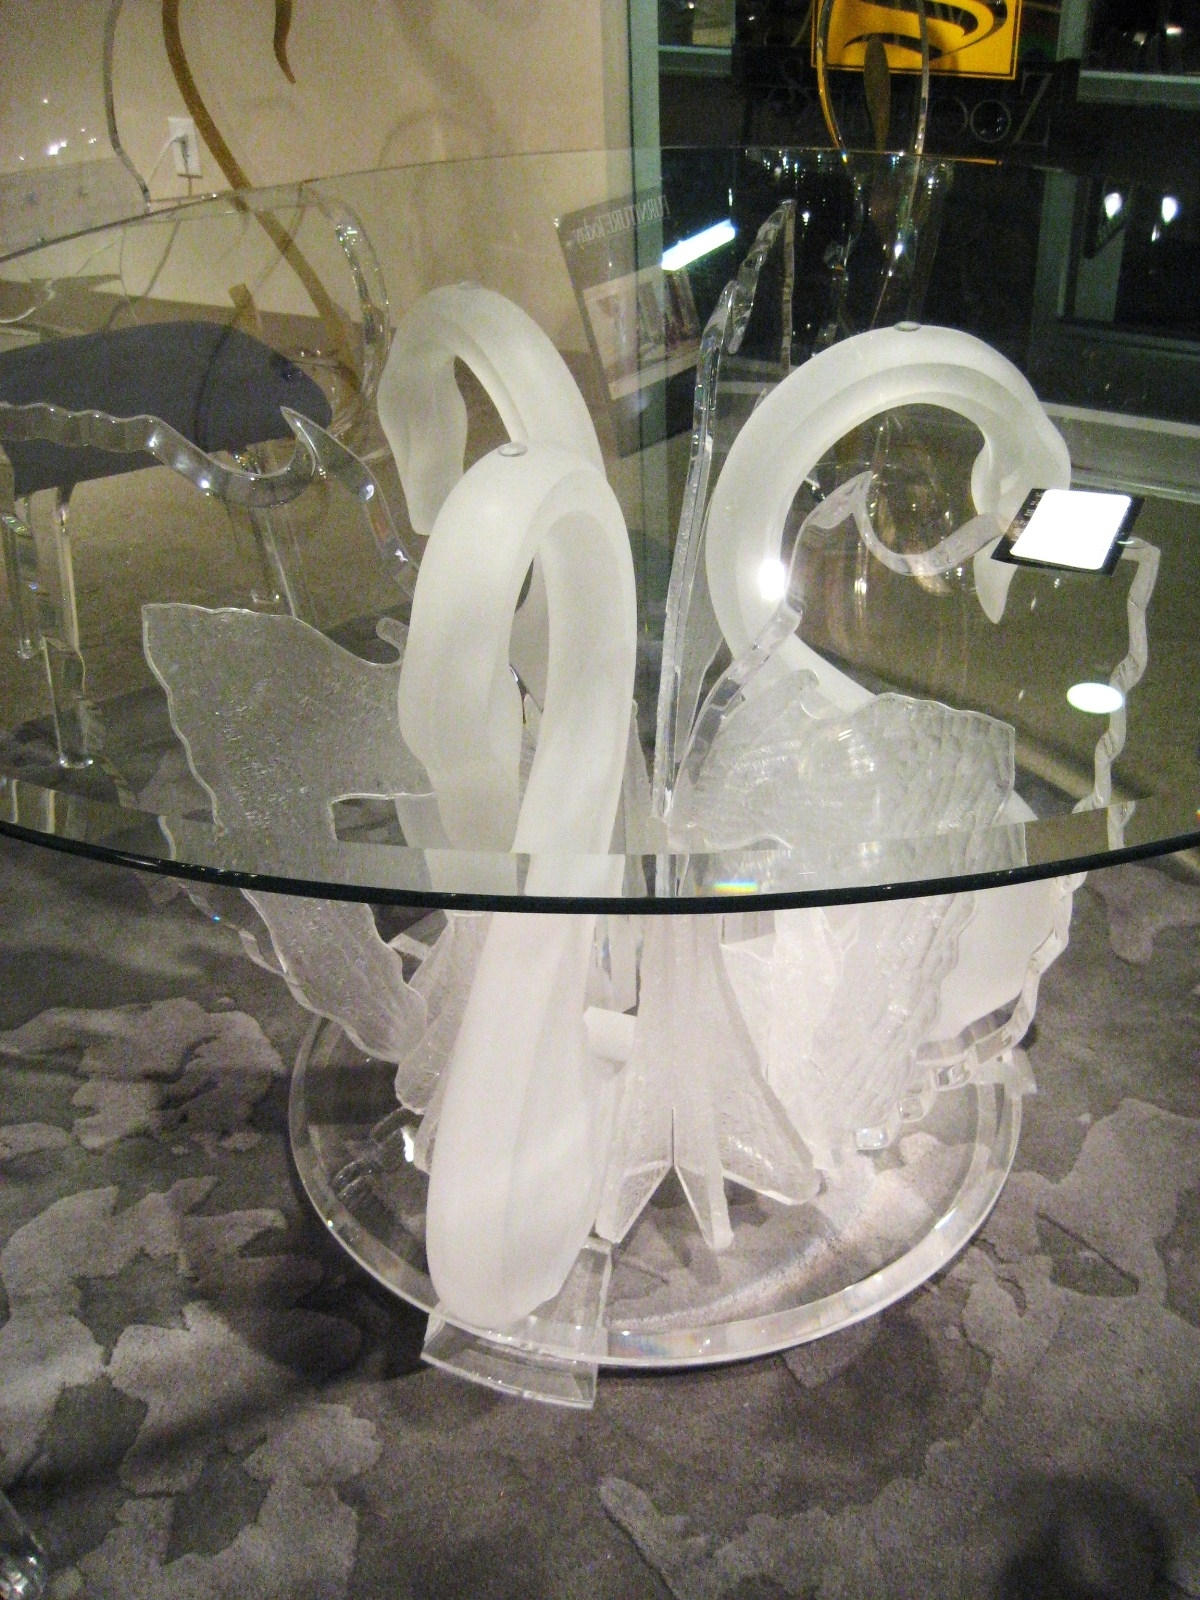 Popular Legend Swan Dinette, Acrylic Wall Art, Acrylic Furniture Within Round Acrylic Dining Tables (View 18 of 25)